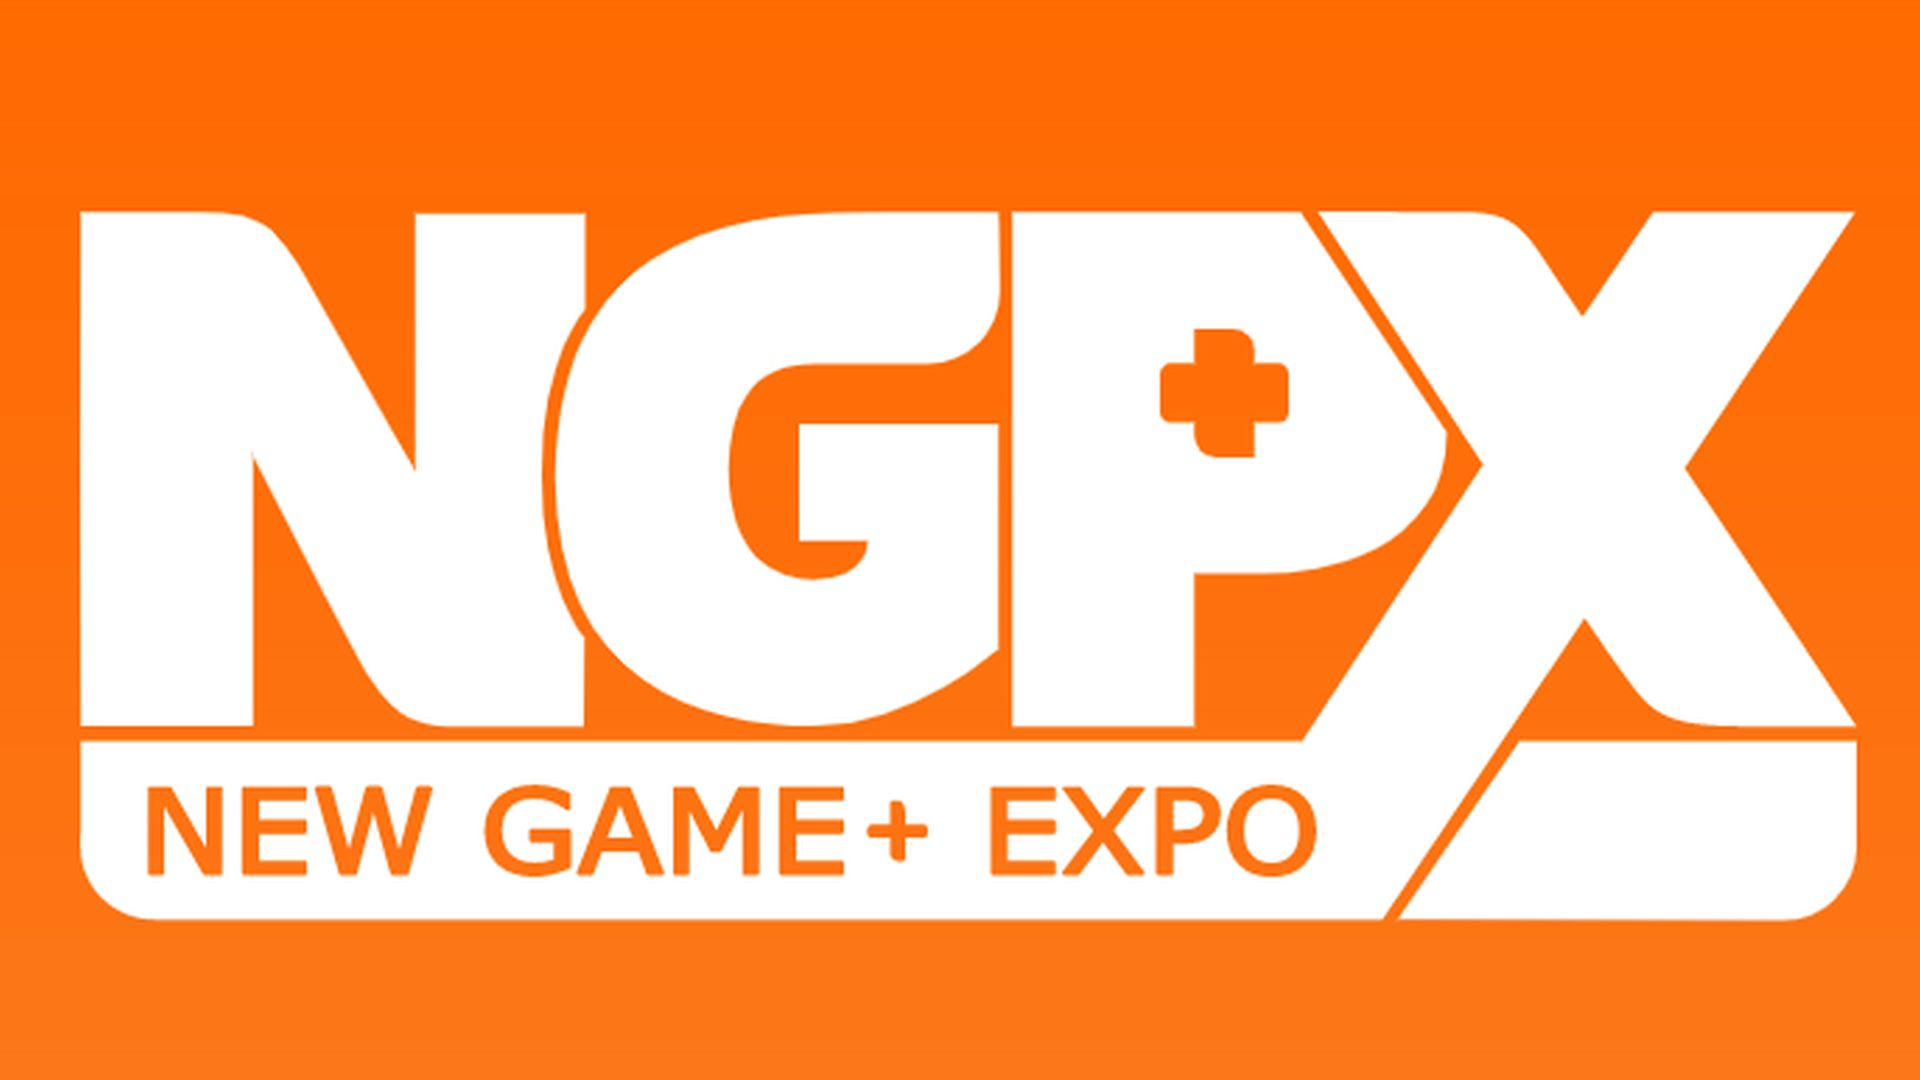 New Game + Expo 2020